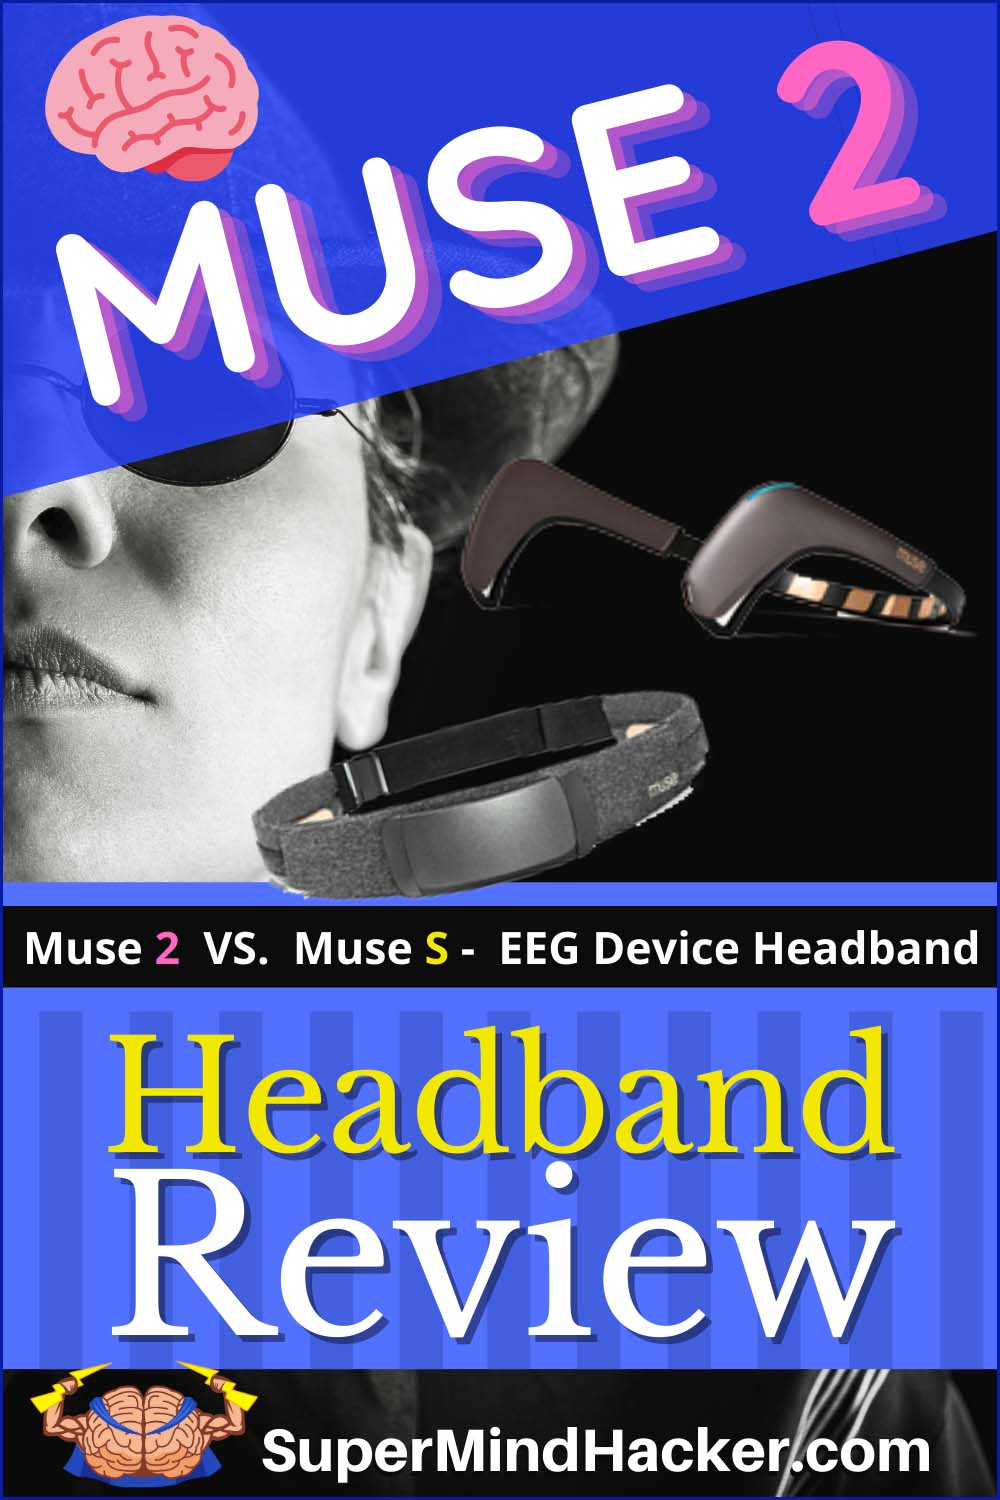 Muse 2 Headband Review supermindhacker